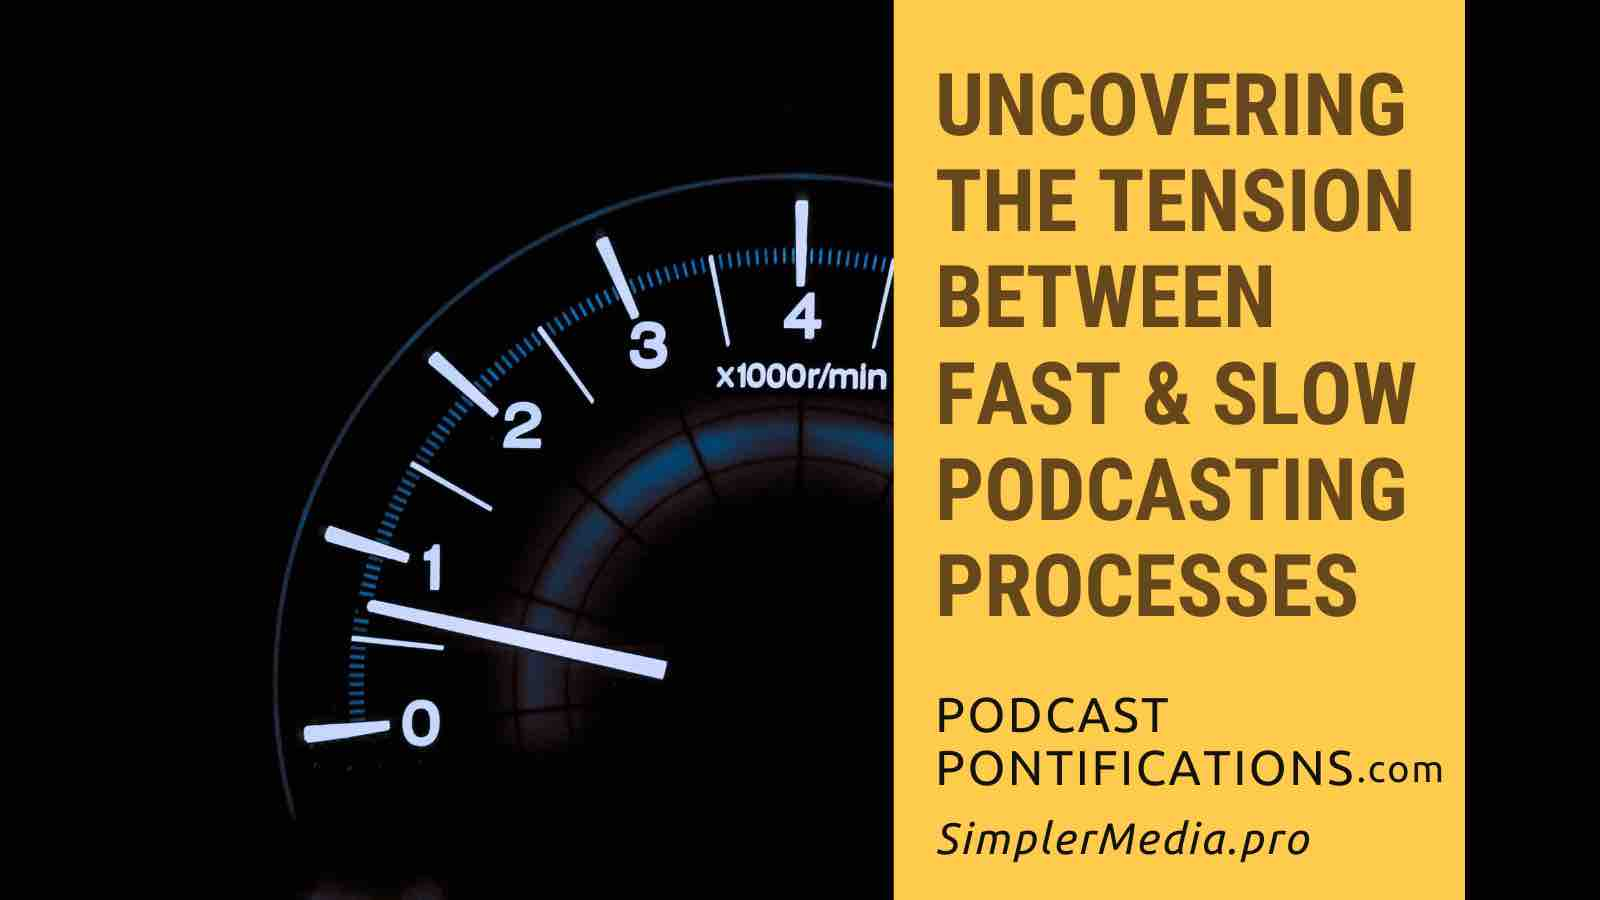 Uncovering The Tension Between Fast & Slow Podcasting Processes